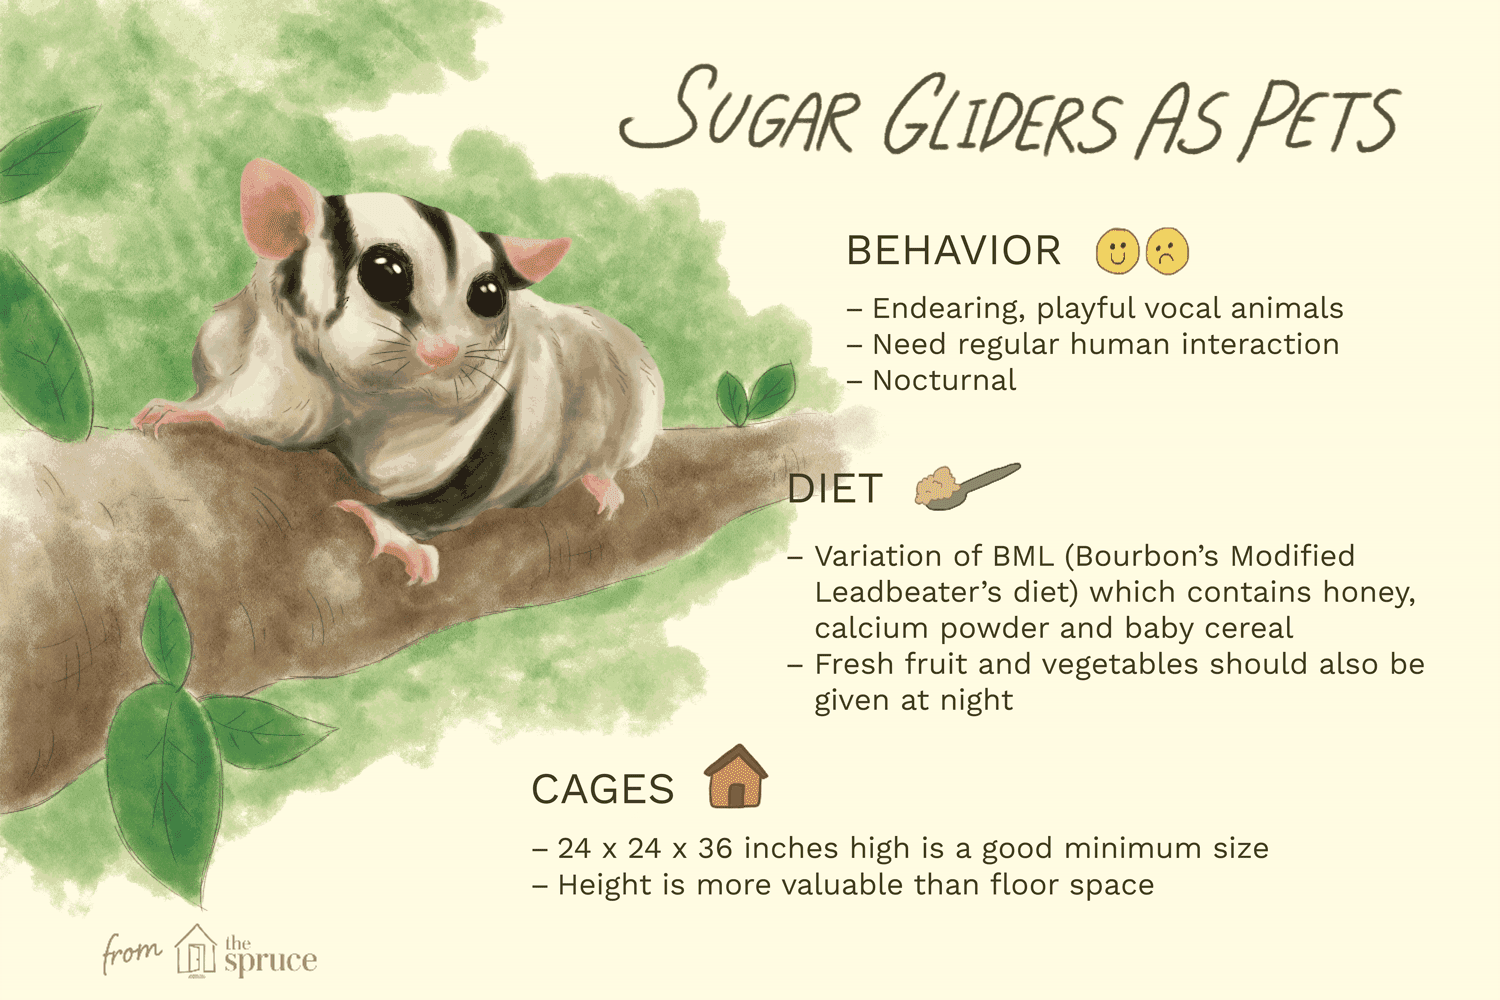 Keeping and Caring For Sugar Gliders as Pets